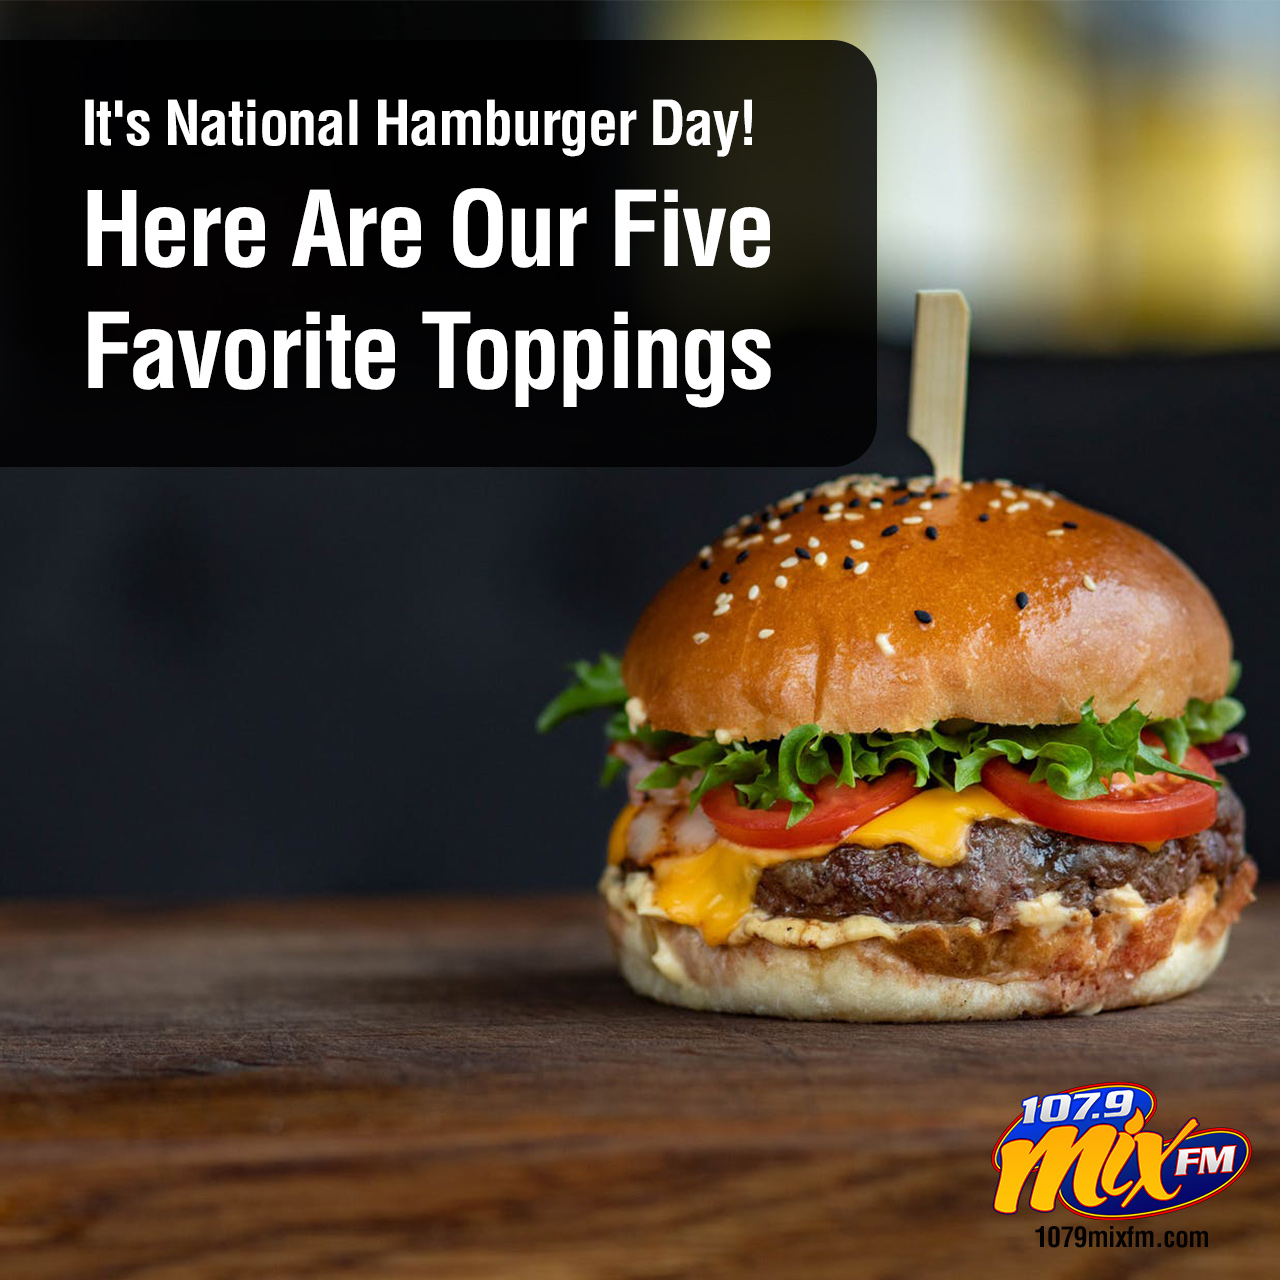 It's National Hamburger Day! Here Are Our Five Favorite Toppings